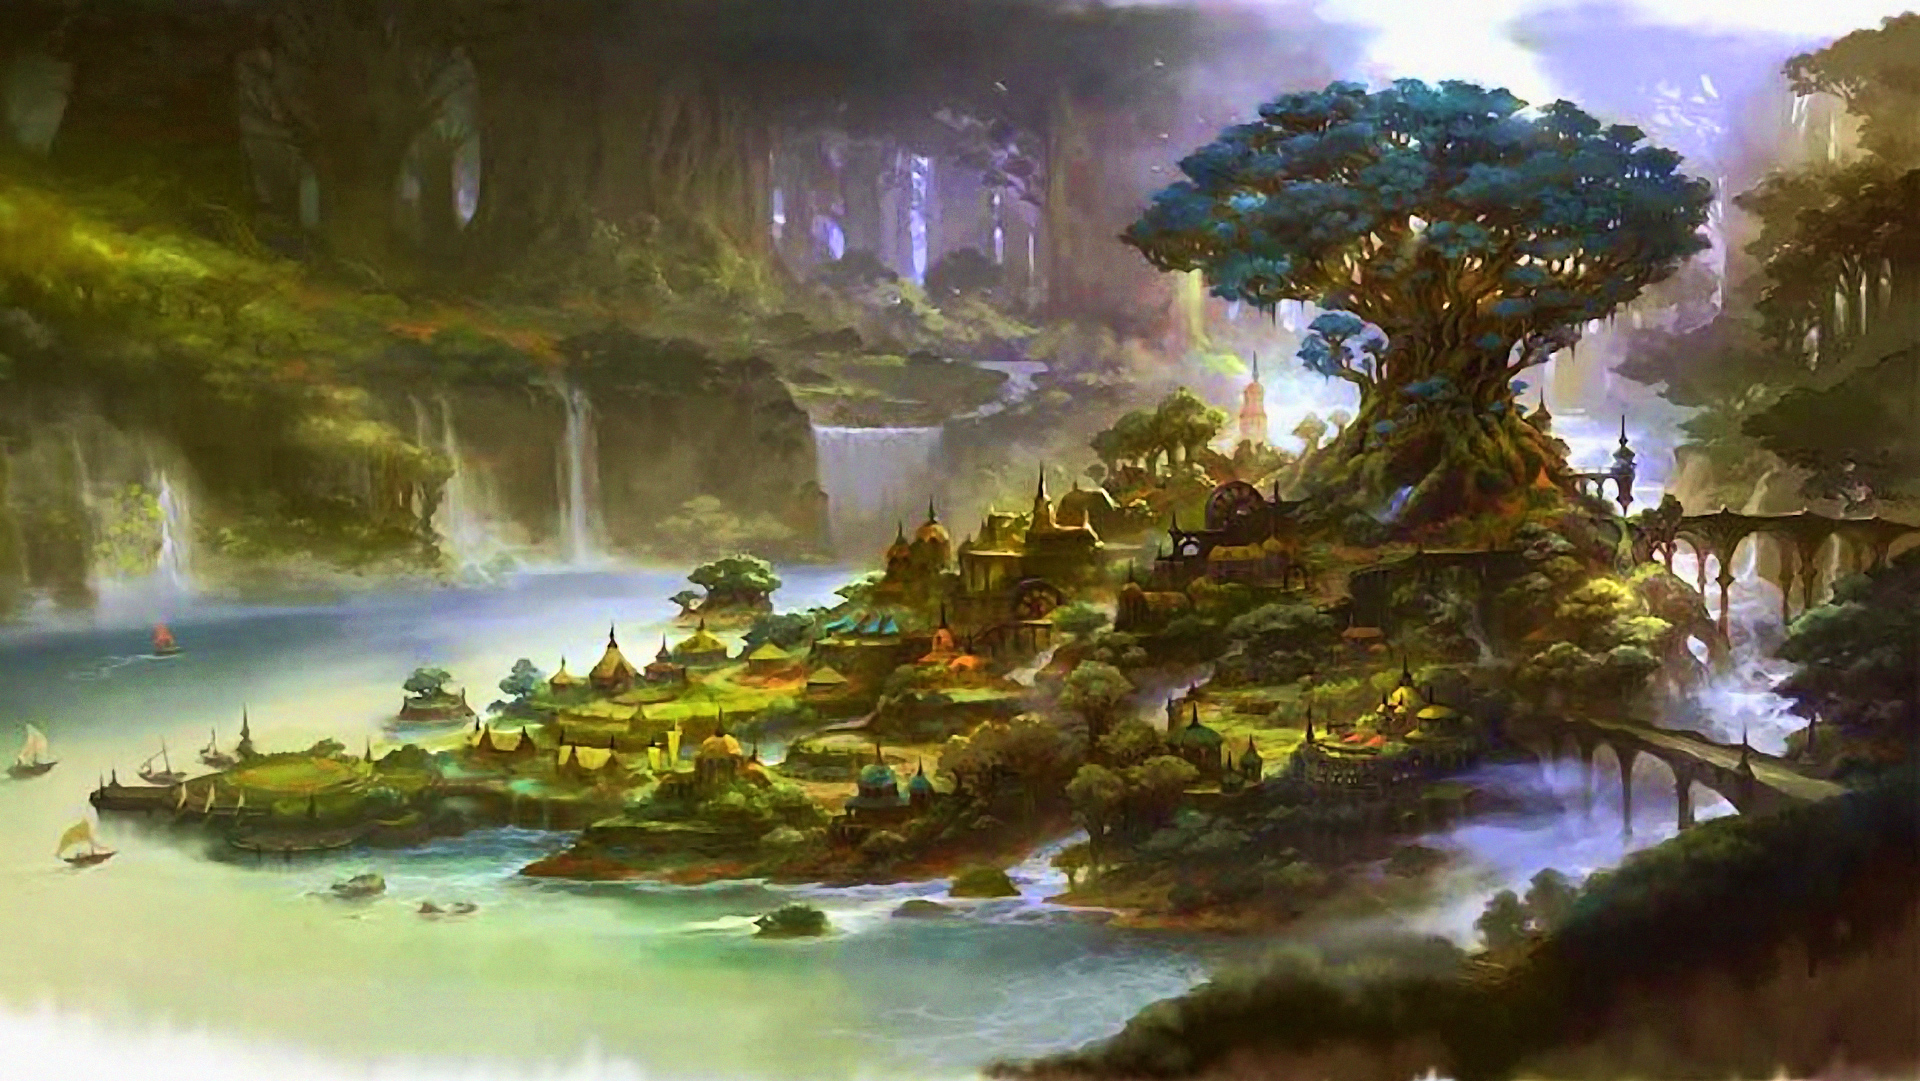 Final fantasy xiv wallpapers pictures images - Ffxiv wallpaper ...